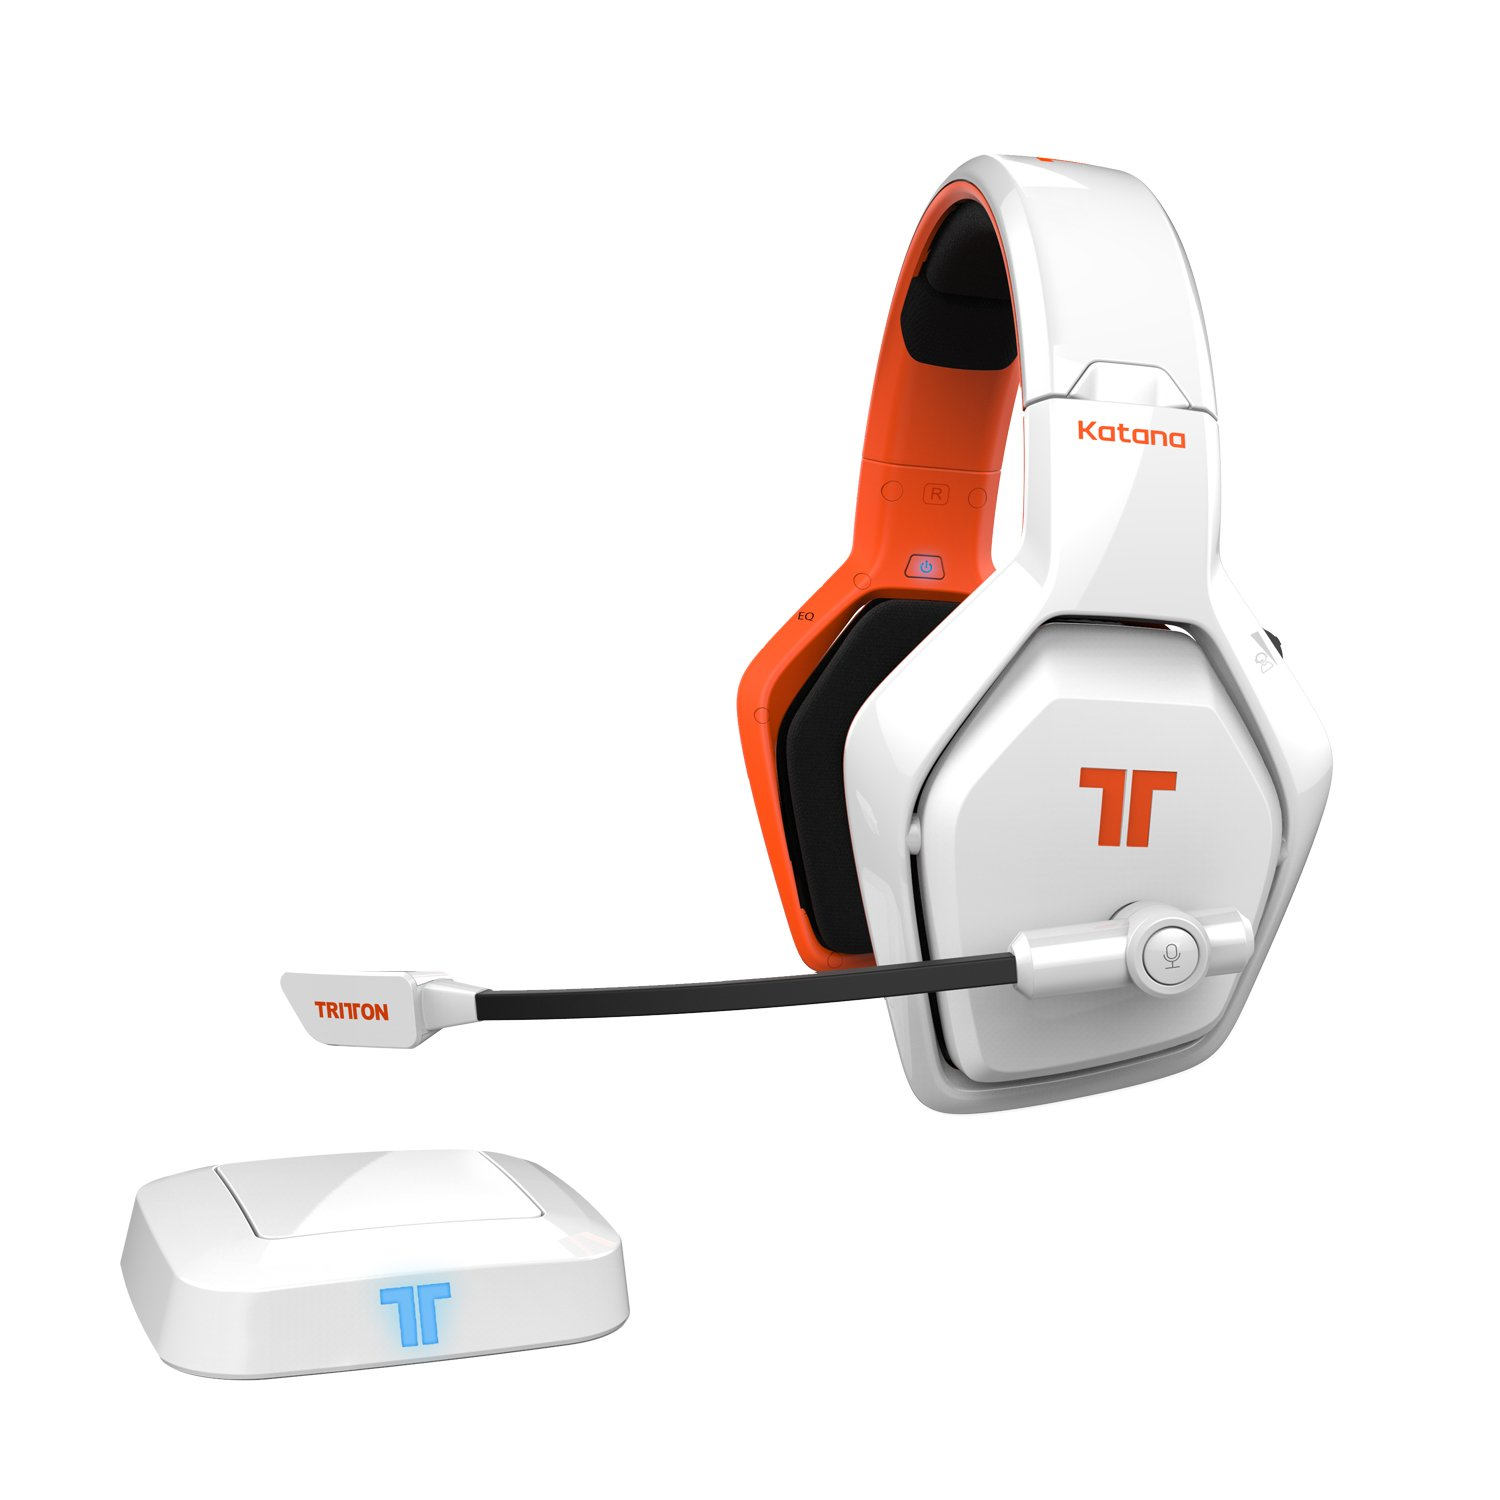 Mad Catz TRITTON Katana HD 7.1 Wireless Headset for Gaming Consoles